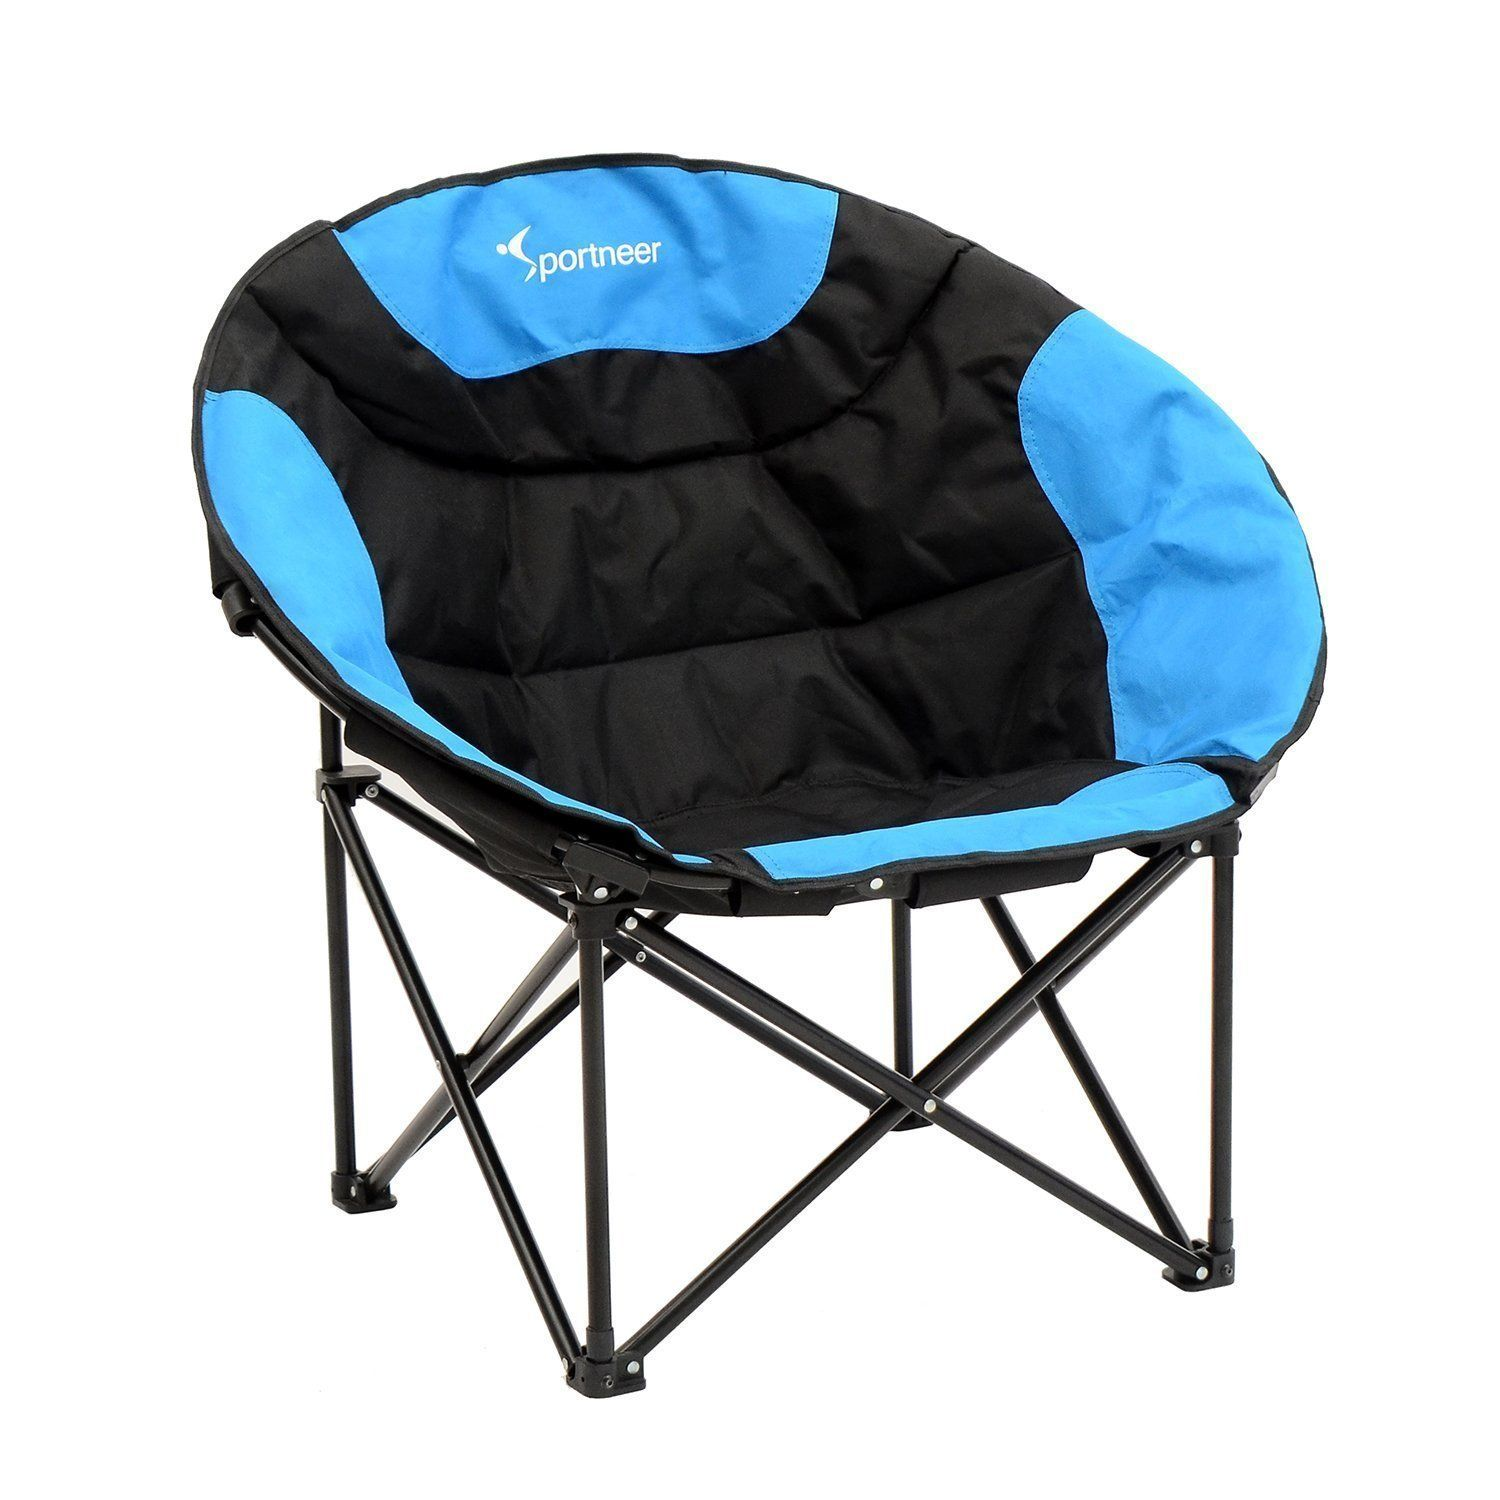 Best large folding saucer chairs moon for toddlers kids for Oversized kids chair